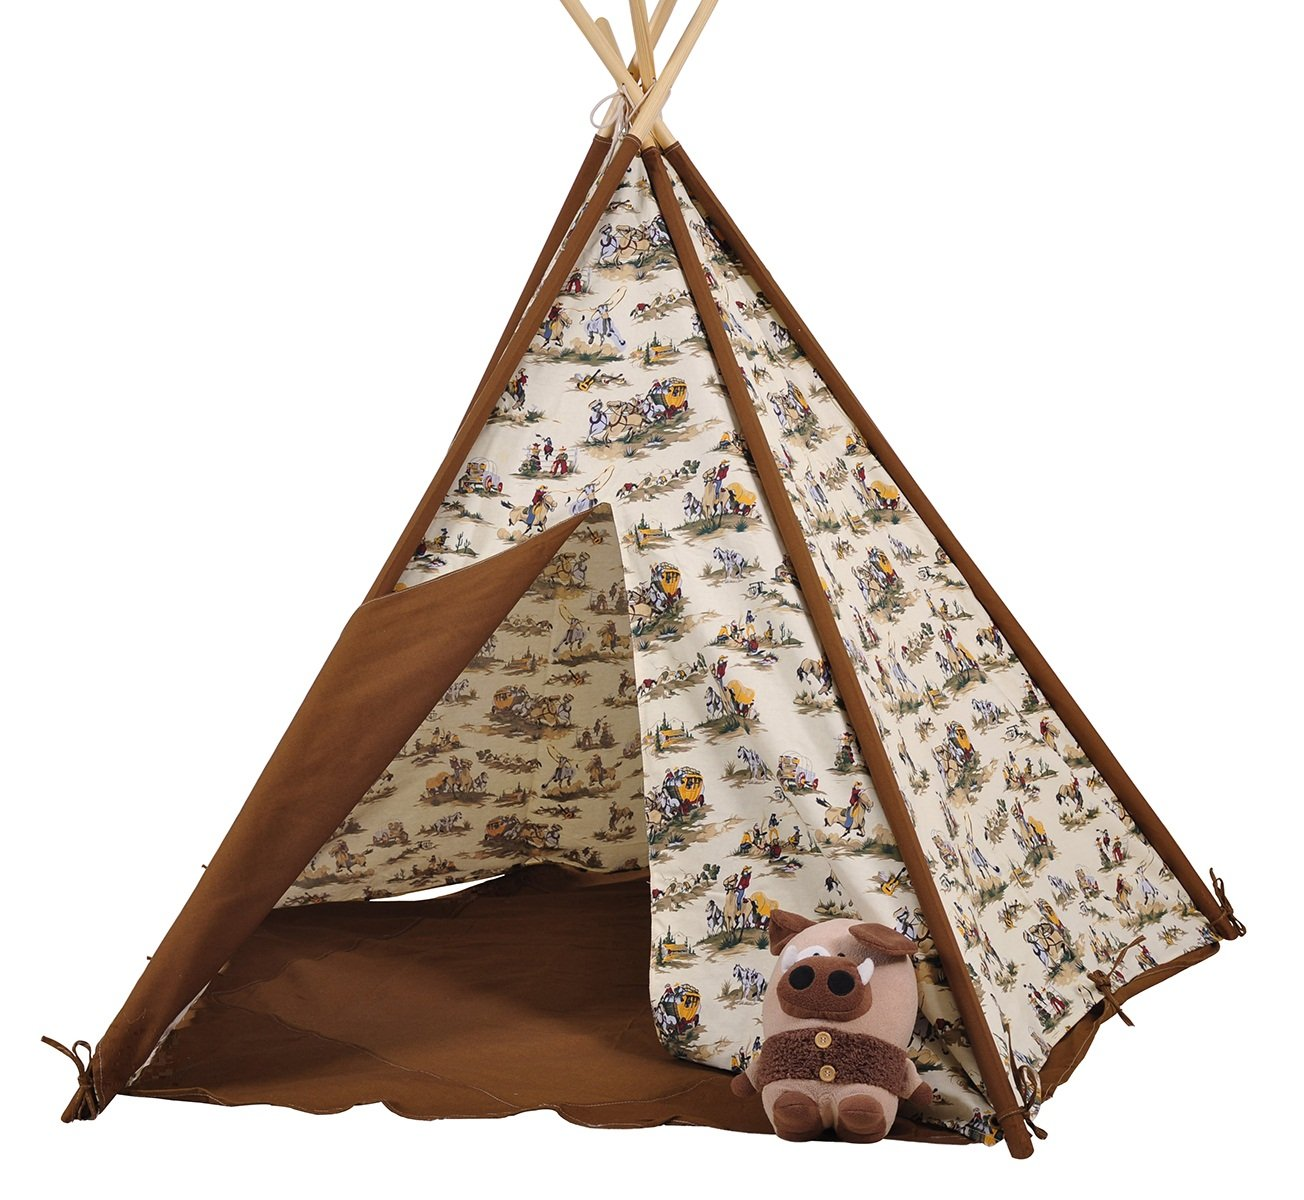 Amazon.com Dream House Indoor and Outdoor Cotton Canvas Cowboy Indian Teepee Tent for Boys Luxury Kids Playhouse Perfect Gift for Children Birthday Toys u0026 ...  sc 1 st  Amazon.com & Amazon.com: Dream House Indoor and Outdoor Cotton Canvas Cowboy ...